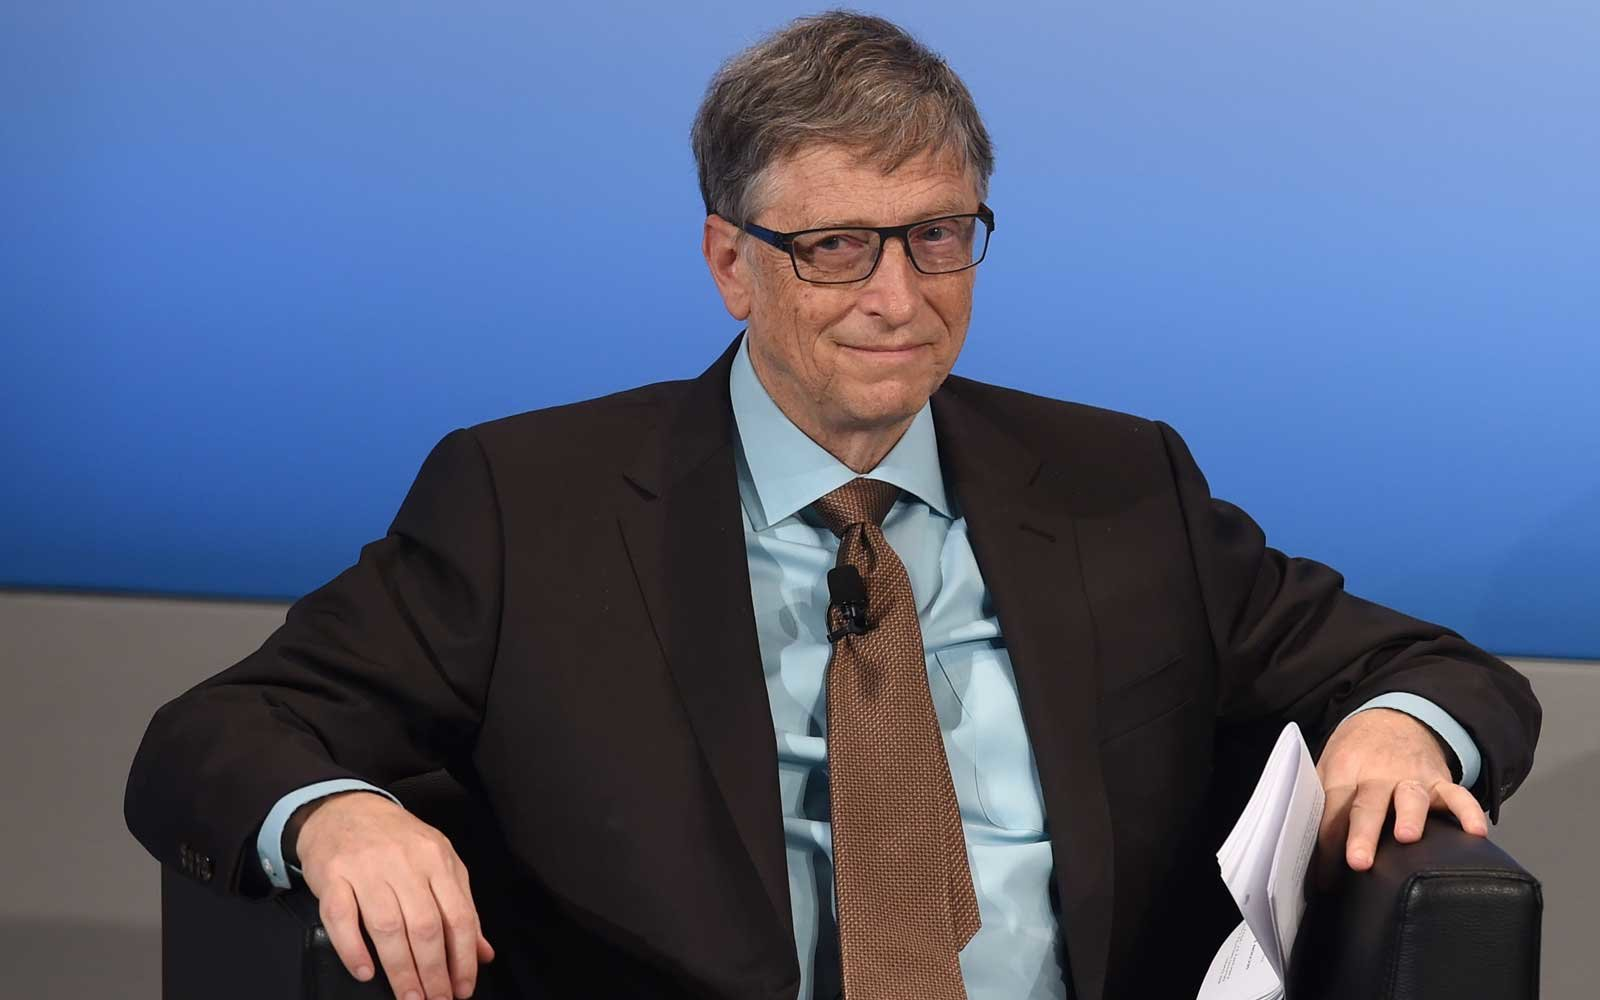 Bill Gates' $400 Billion Mistake